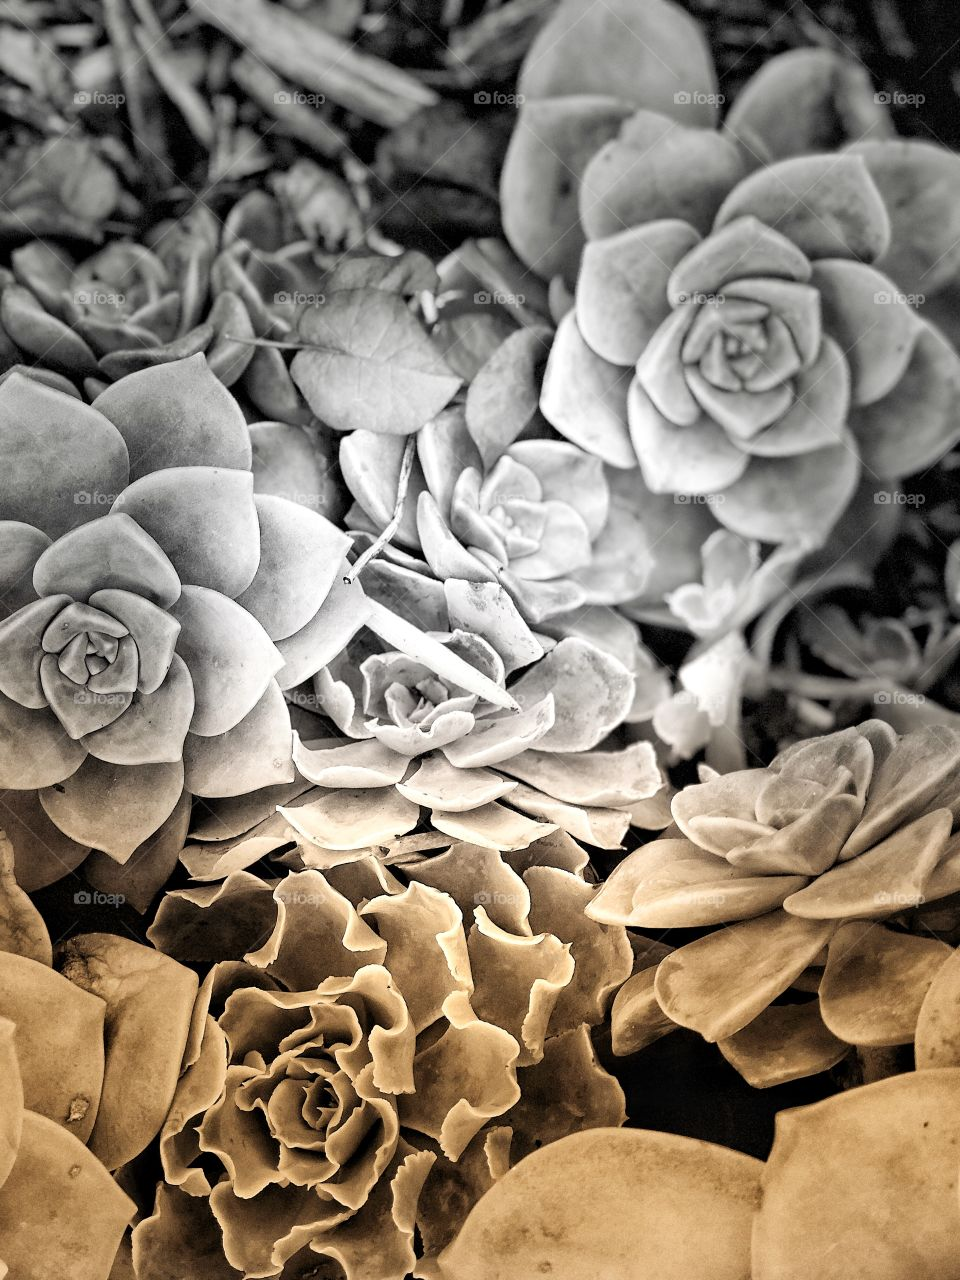 Incredible and Wonderful Canvas Art, Black and White Succulents with Golden Hints